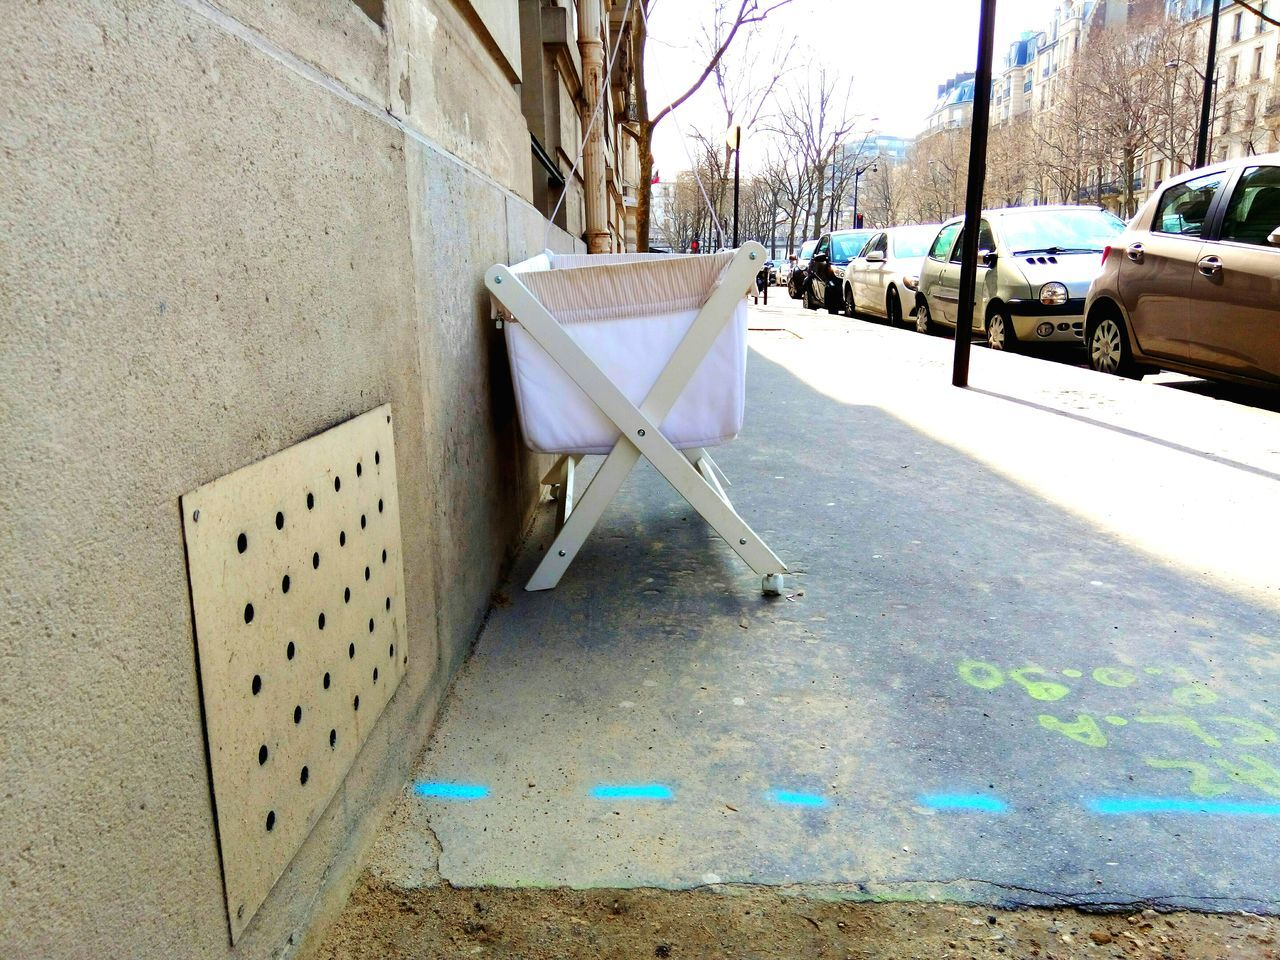 Baby Carriage On Sidewalk By Cars In City